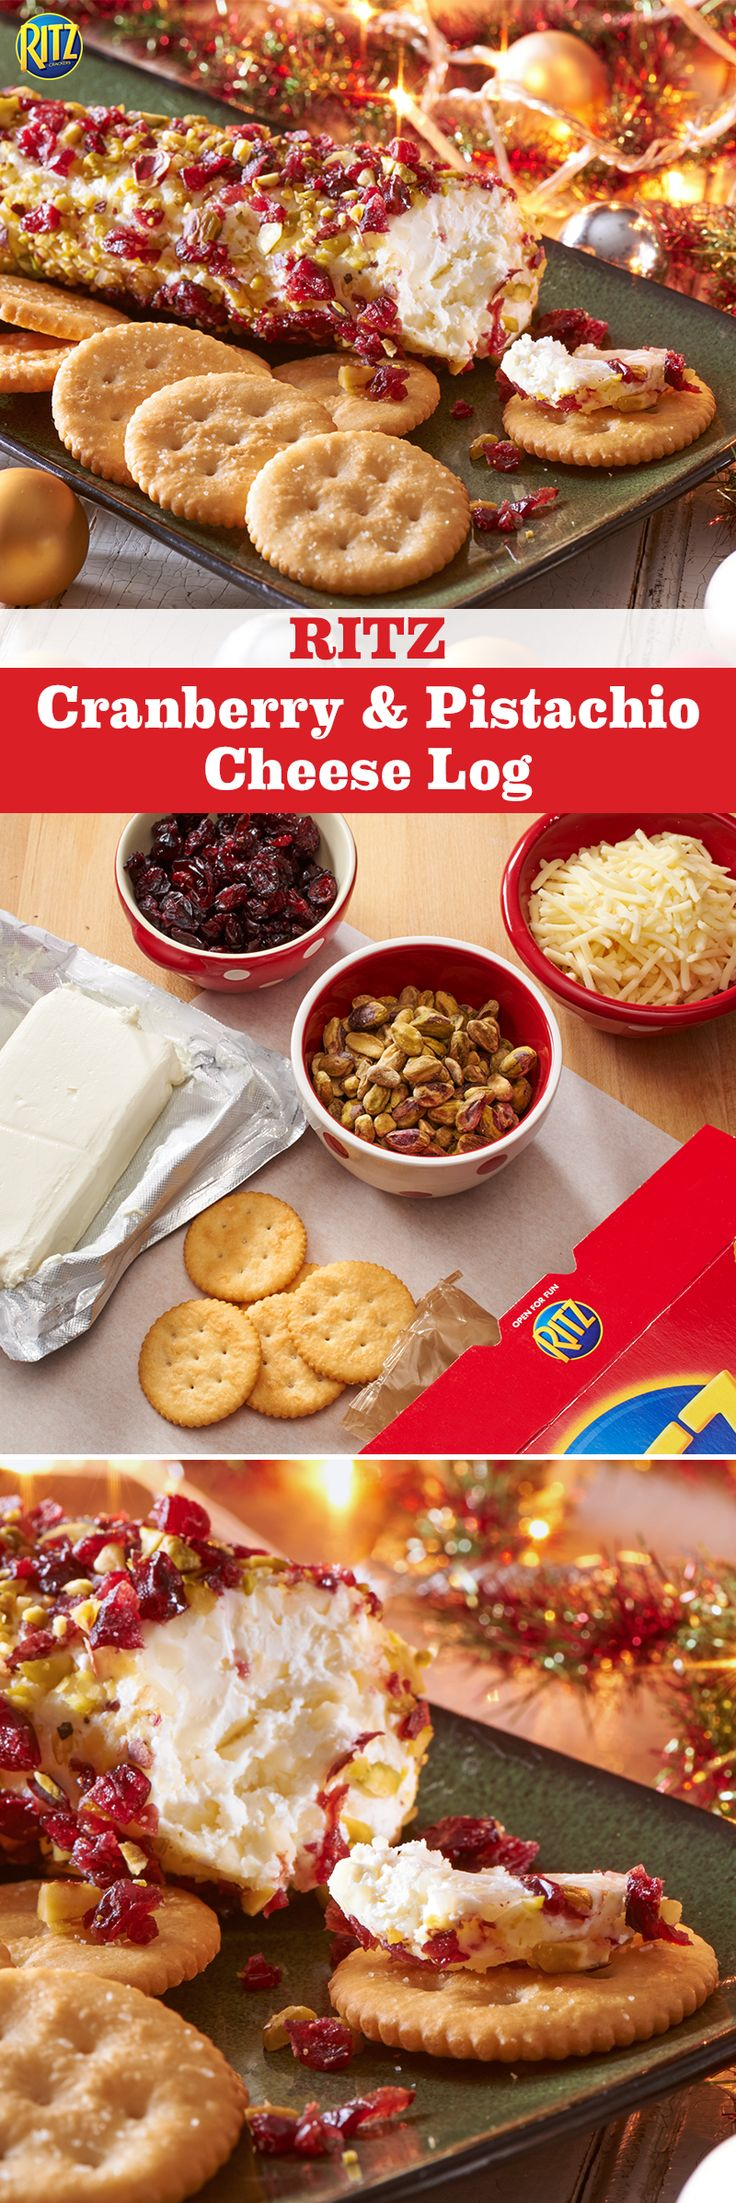 Decorate the tree while savoring our RITZ Cranberry & Pistachio Cheese Log. Mix white cheddar and cream cheese then shape into a log. Roll it through dried cranberries and pistachios and serve with RITZ crackers for a delicious holiday treat. Mmmm!